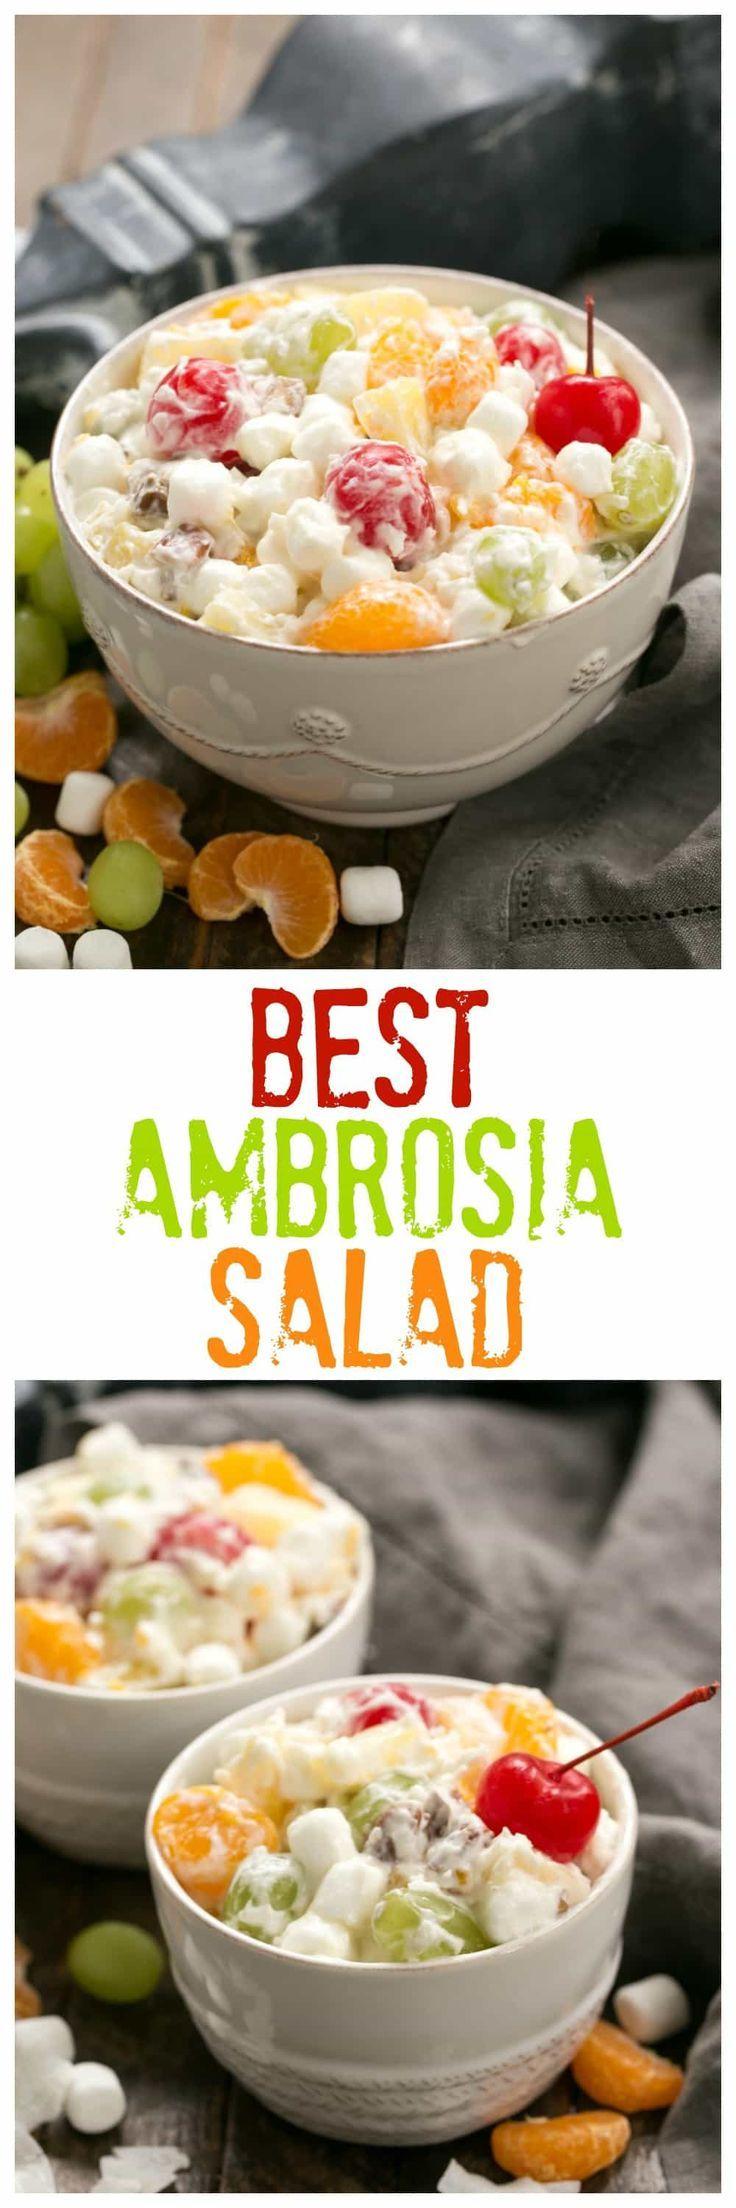 The Best Ambrosia Salad {No Cool Whip} | A dreamy fruit and coconut salad with marshmallows and pecans. #salad #holidayrecipe #ambrosia